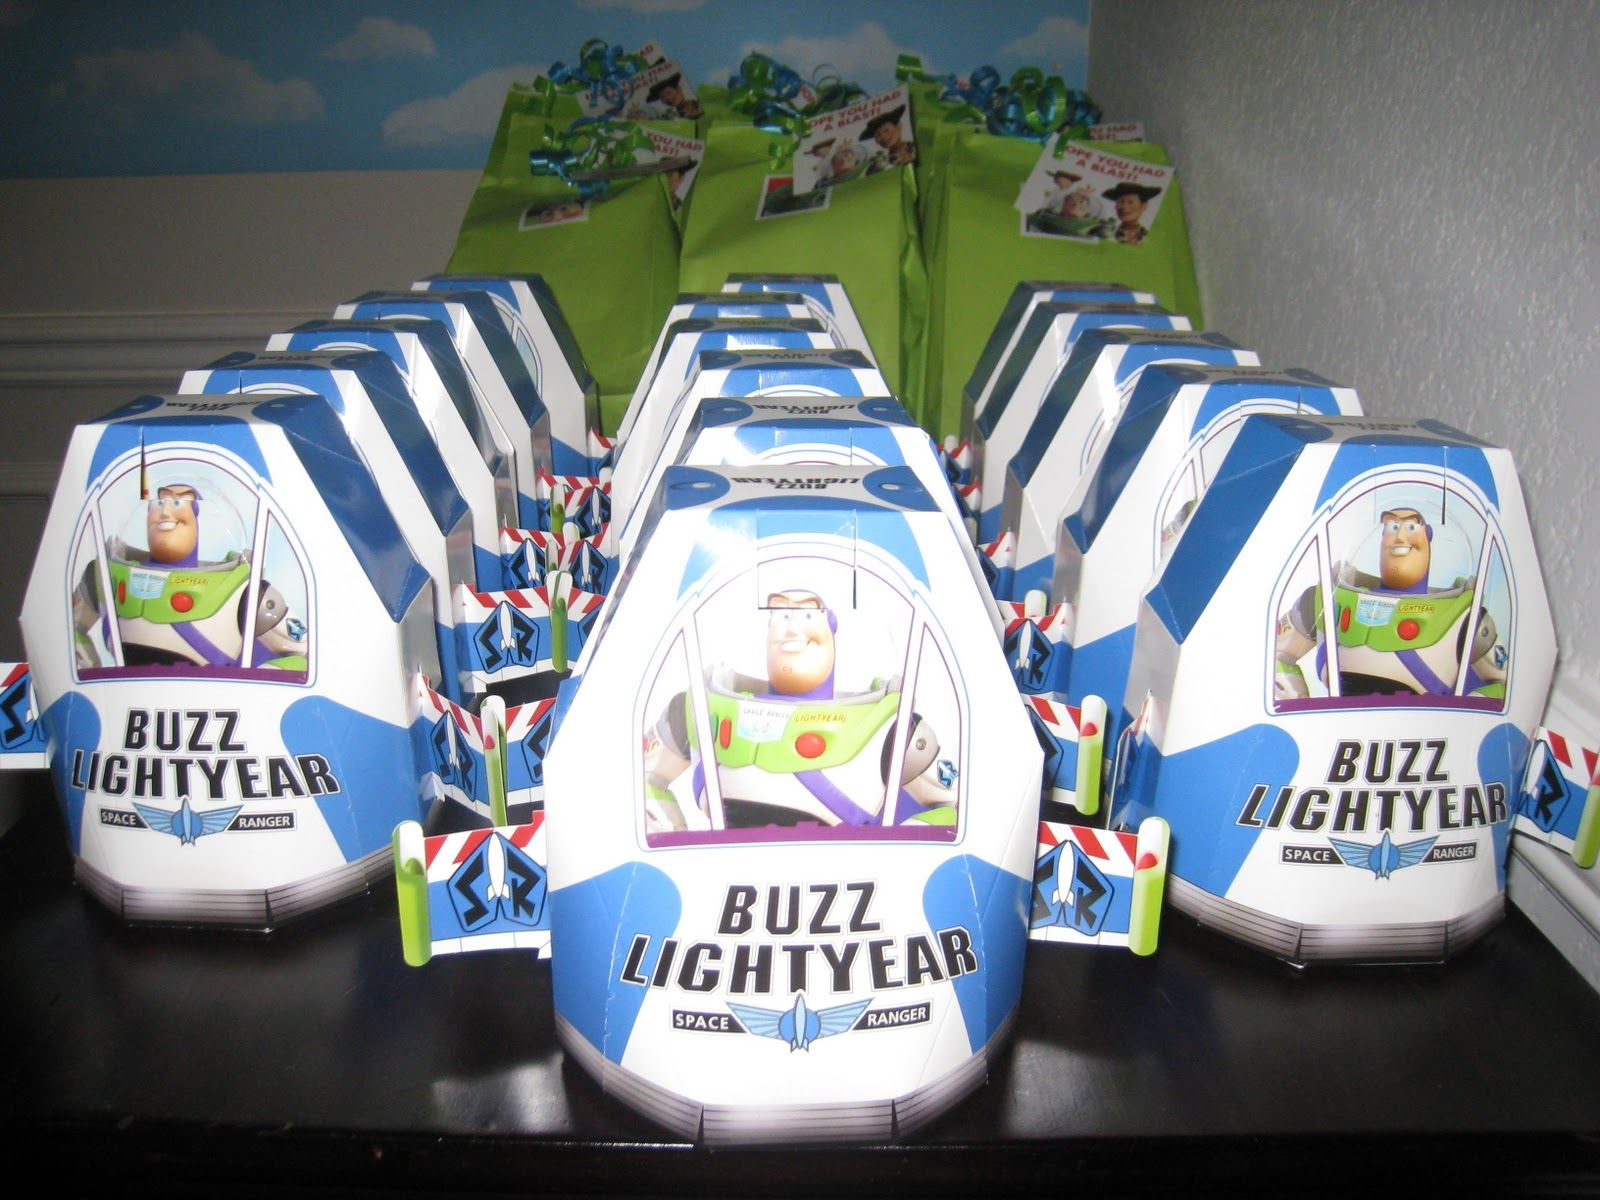 Buzz party favors gabes bday pinterest toy story party and buzz lightyear pronofoot35fo Gallery